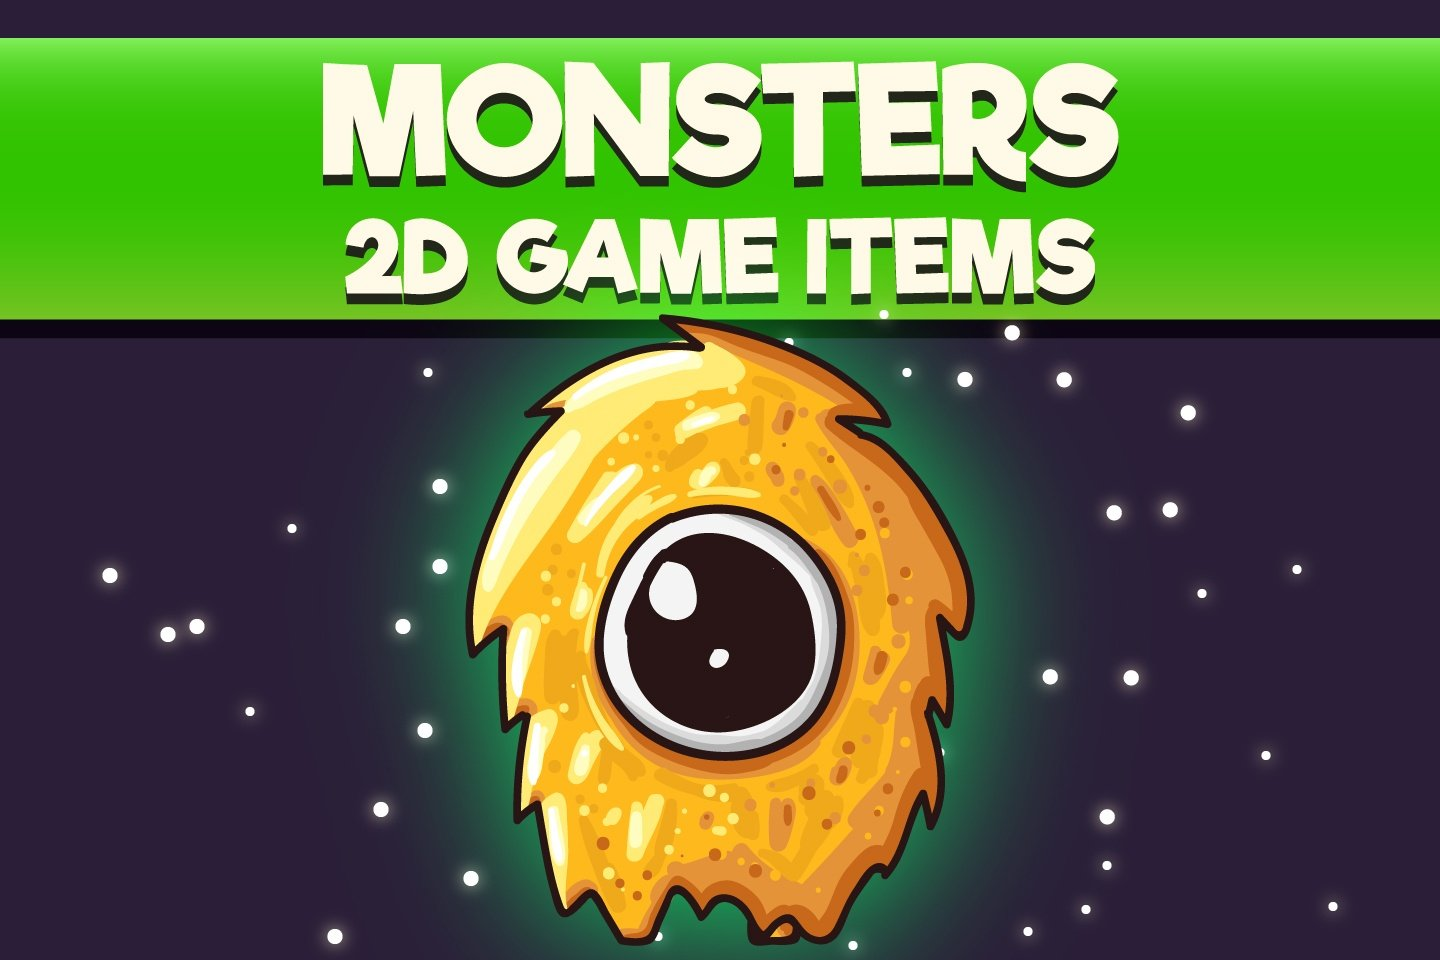 Free Monster 2D Game Items